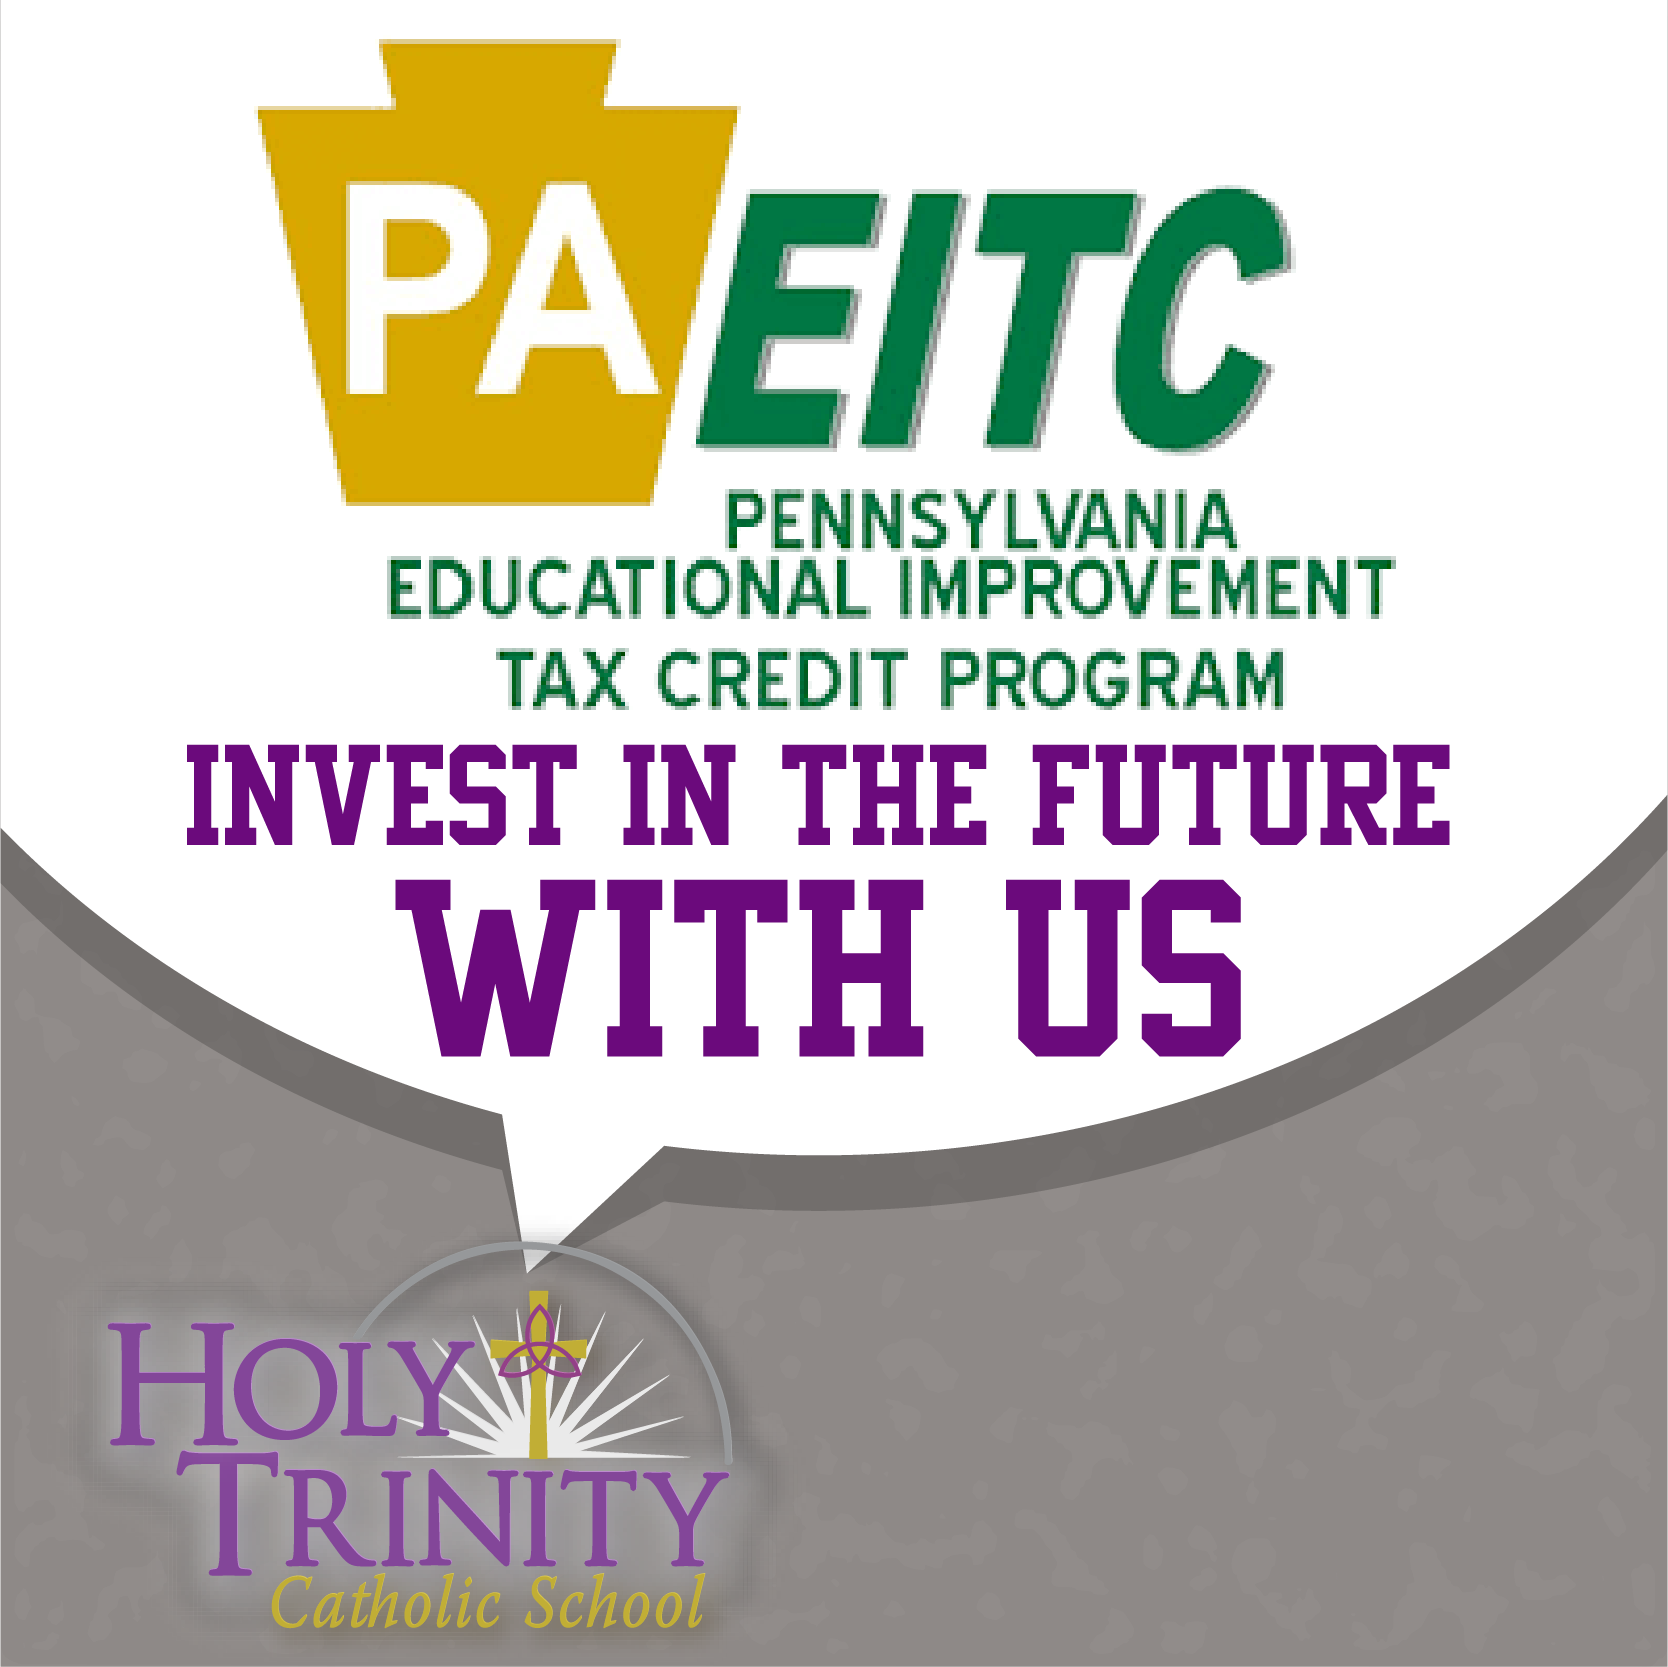 EITC Program – INVEST IN THE FUTURE WITH US